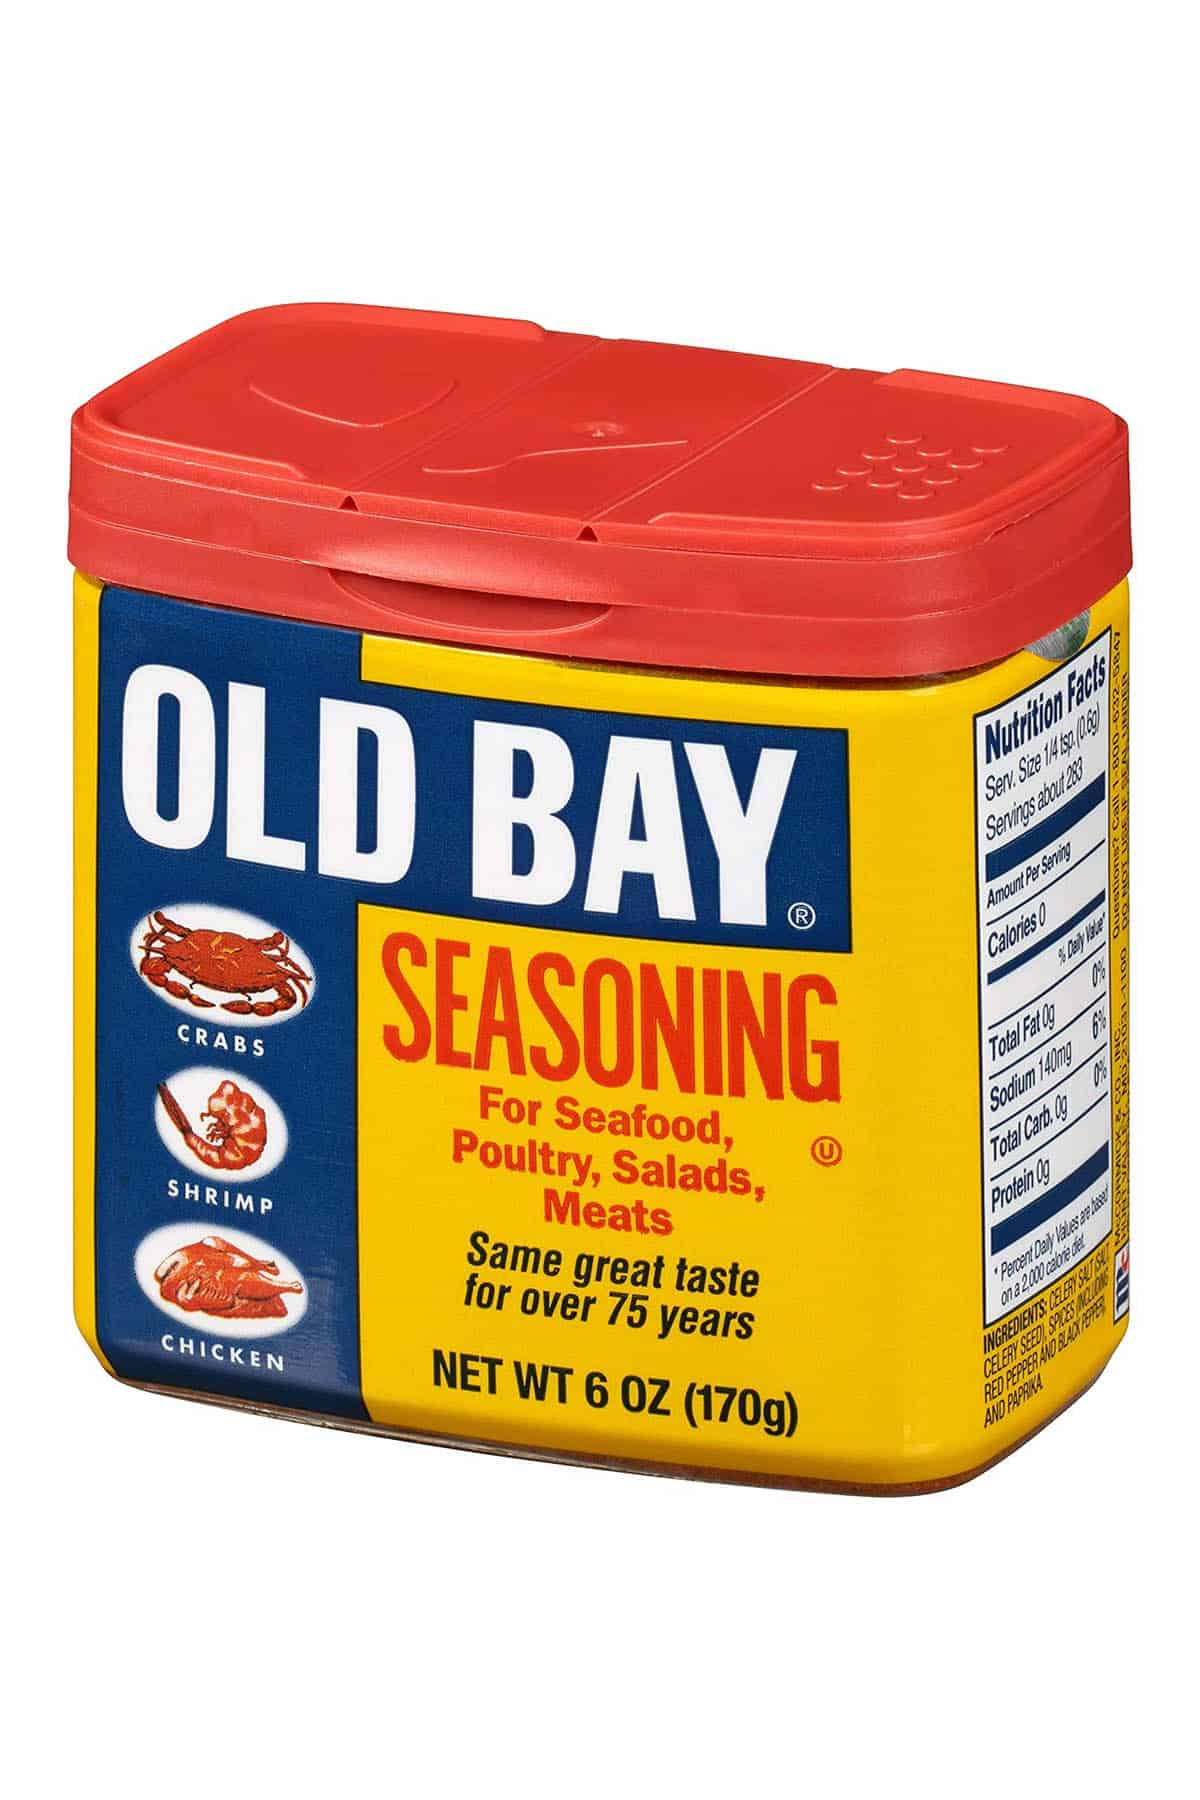 Old Bay Seasoning: Recipe, Substitutes & All About It